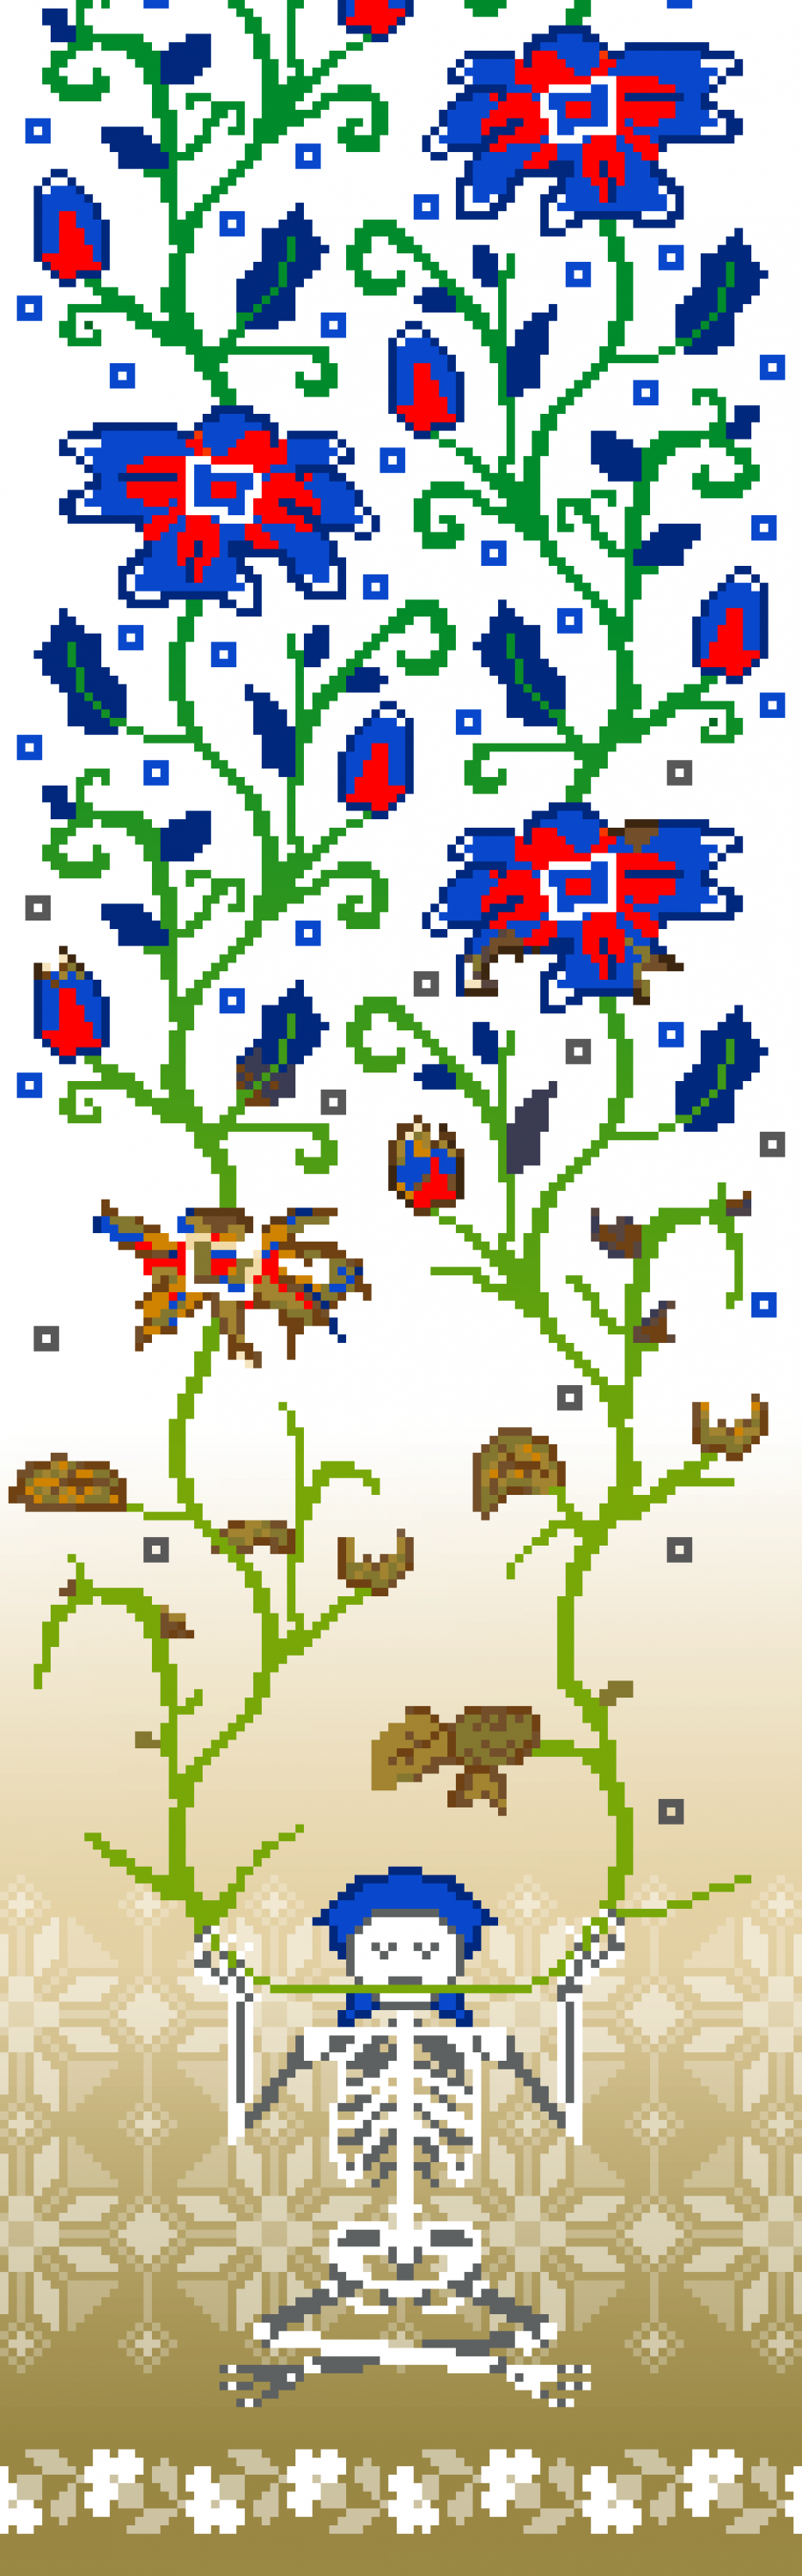 This piece is a vertical pixel design with a white to tan gradient background and bright blue and red flower design. The flowers start vibrant at the top and slowly wither down until they reach a skeleton sitting at the bottom of the banner who is eating